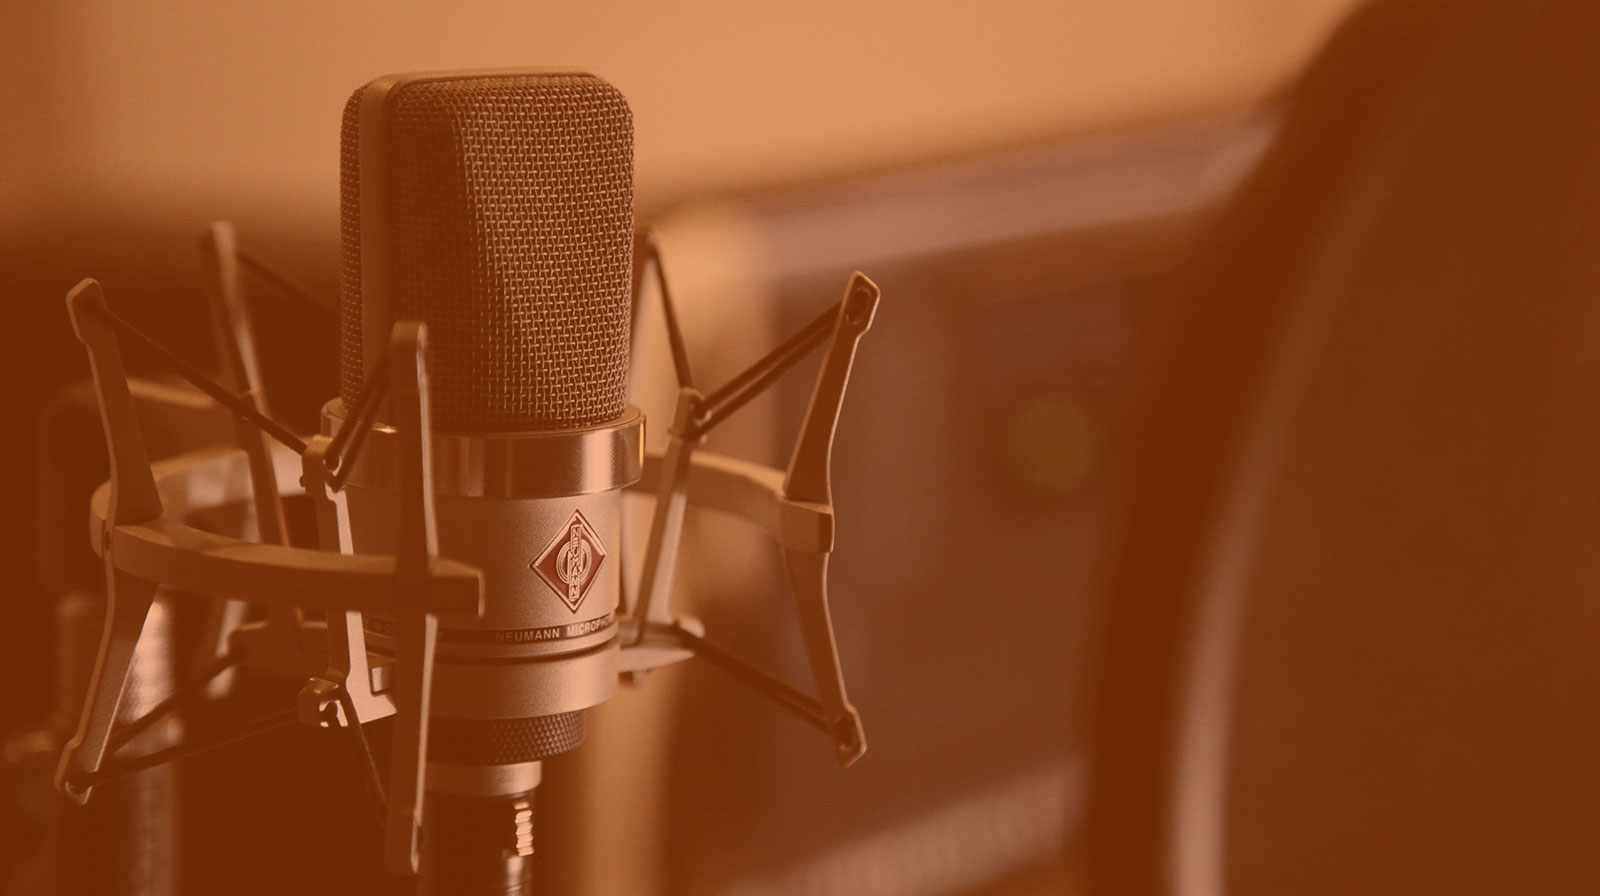 The essentials for recording screencasts and podcasts